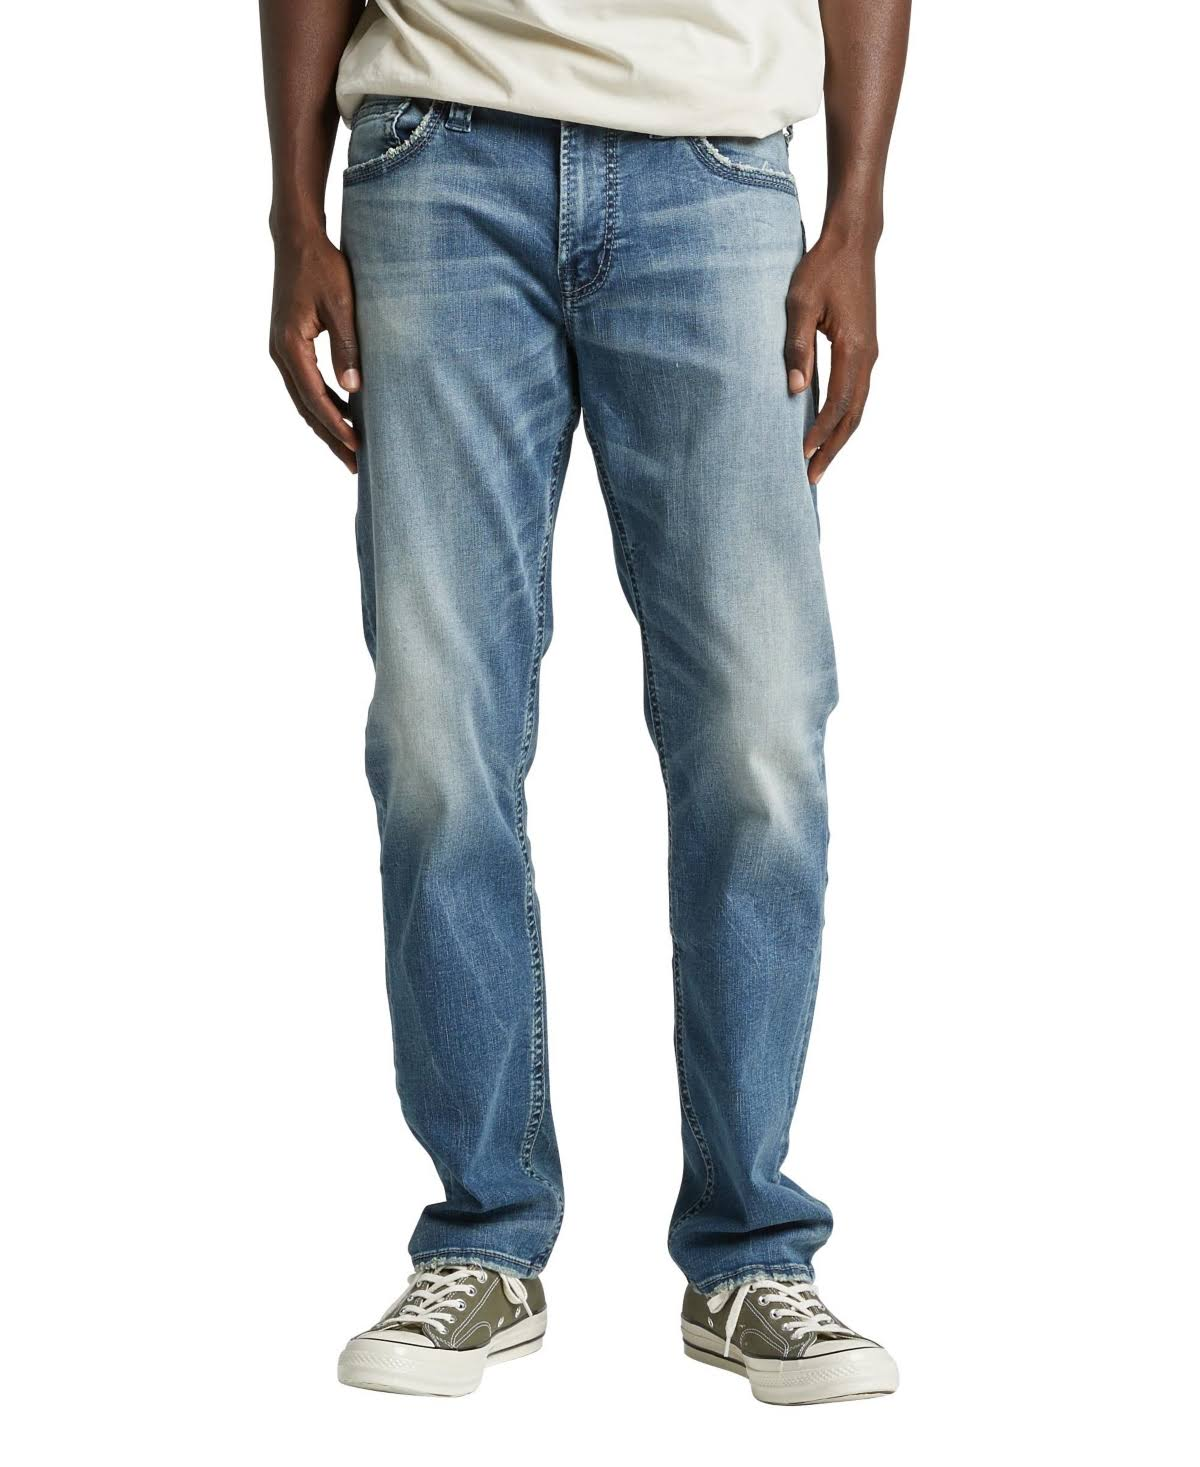 Silver Jeans Co. Eddie Athletic Jean - Indigo